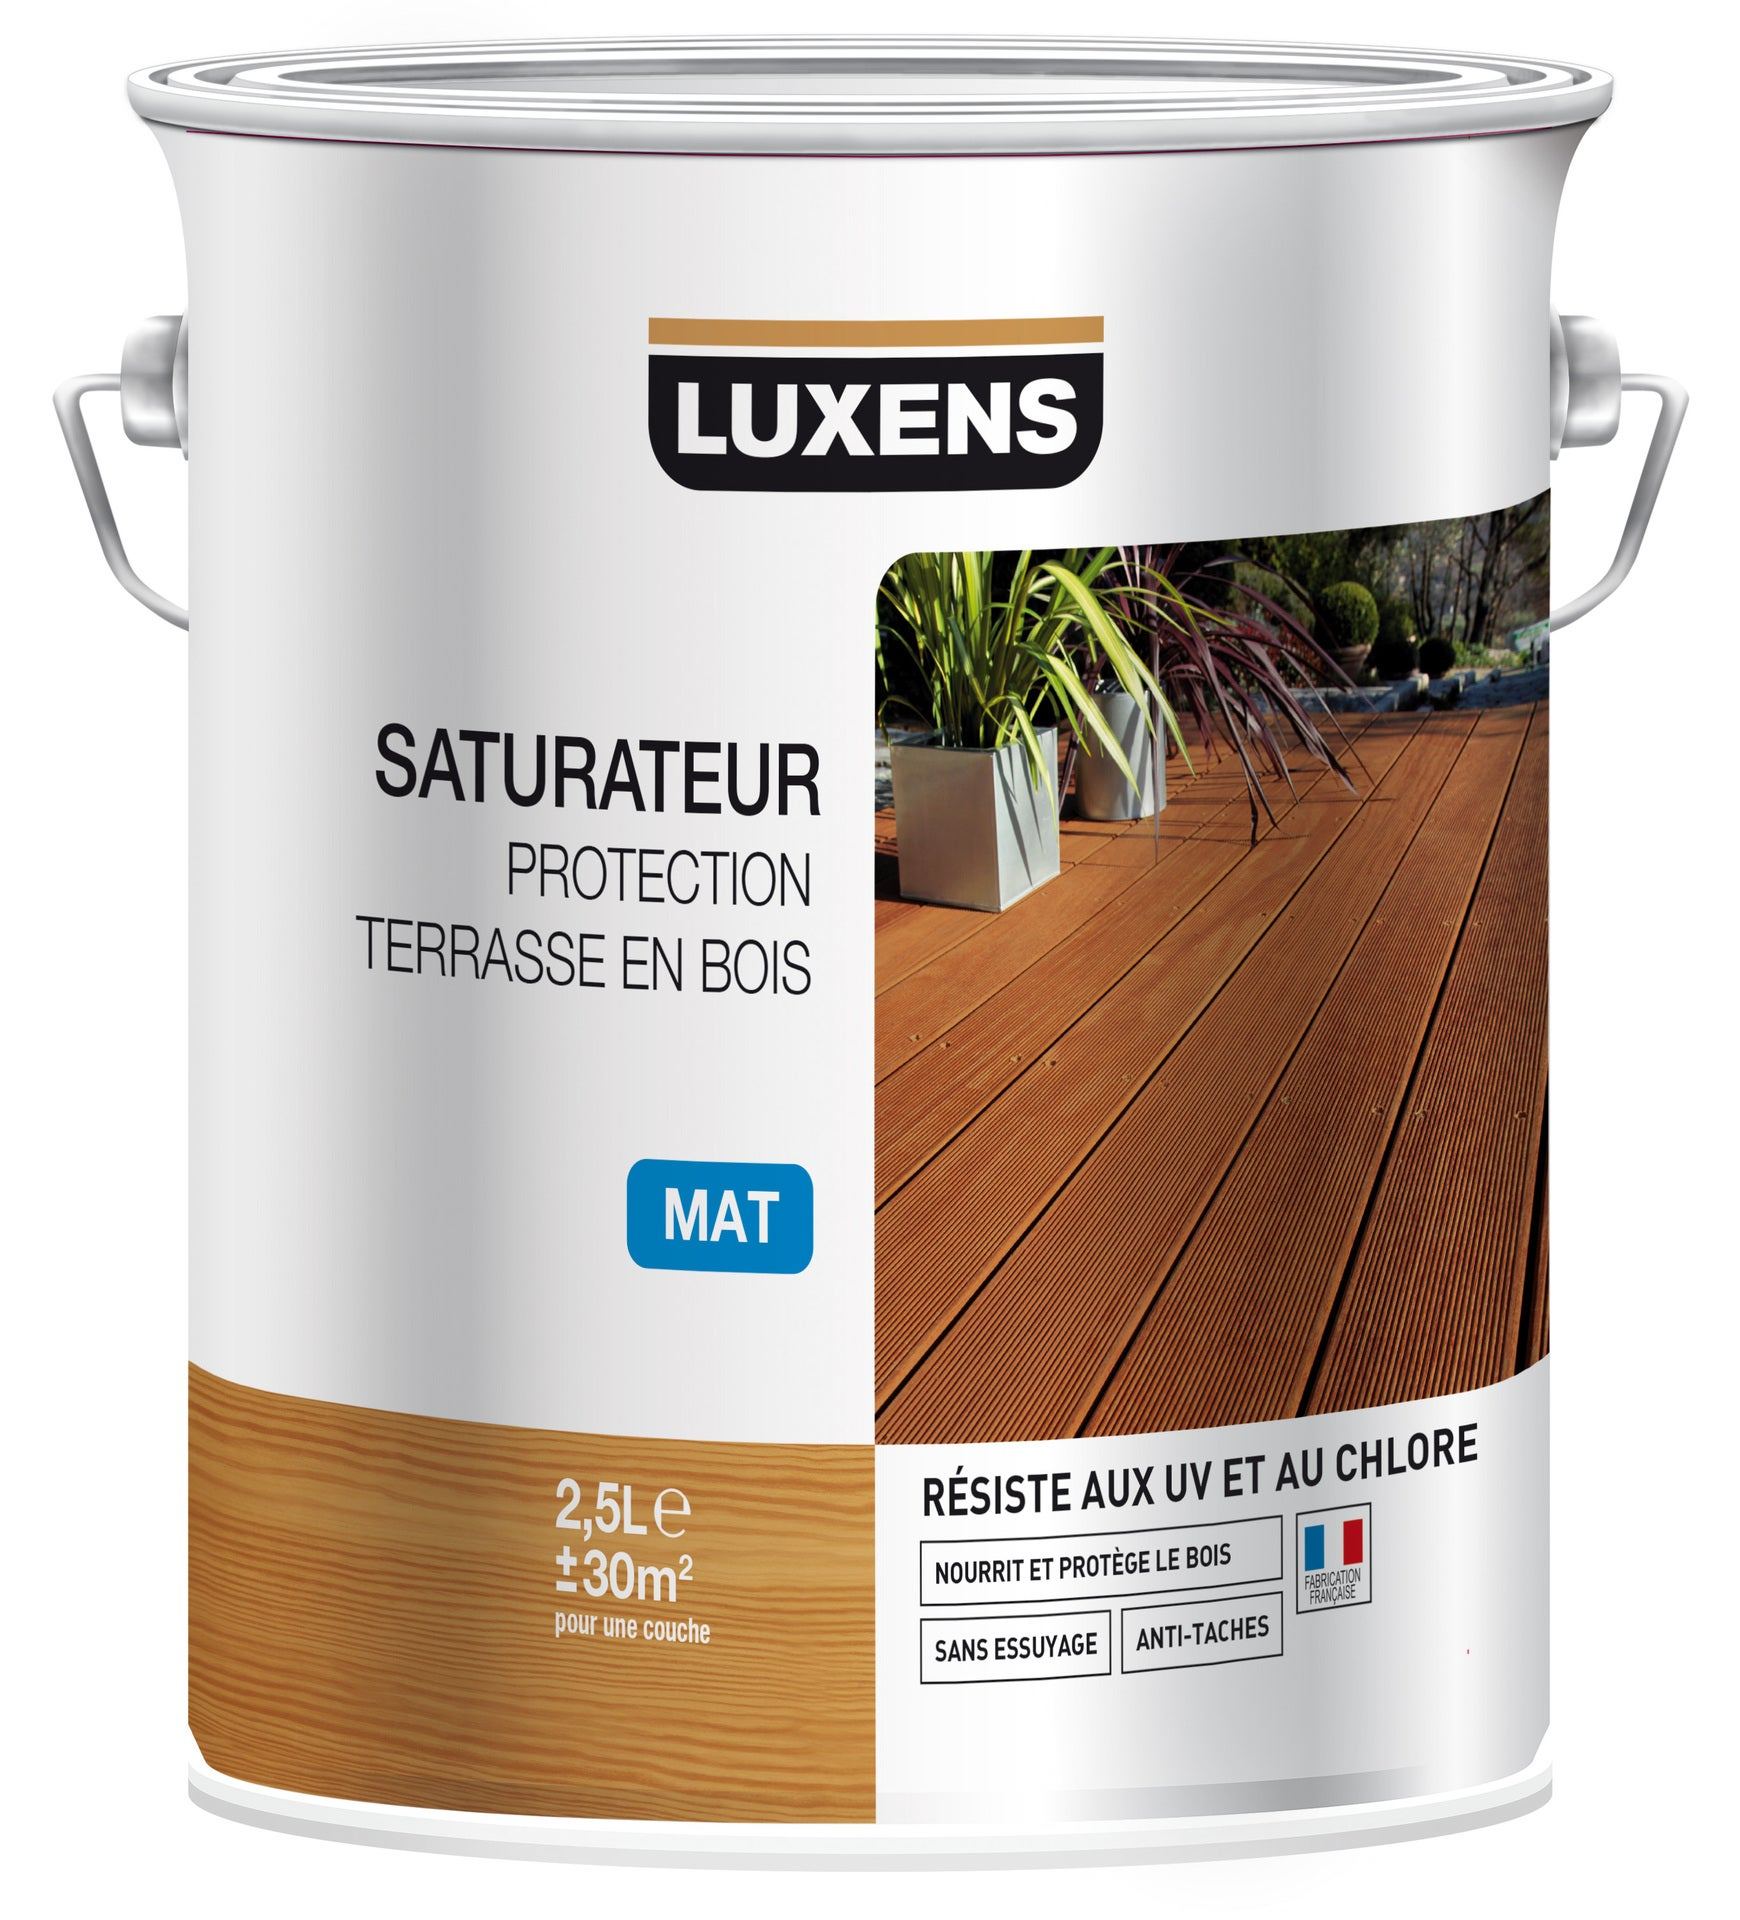 Saturateur Luxens Saturateur Protection Terrasse En Bois 2.5 L, Naturel intérieur Saturateur Luxens Protection Terrasse Bois 5L Naturel